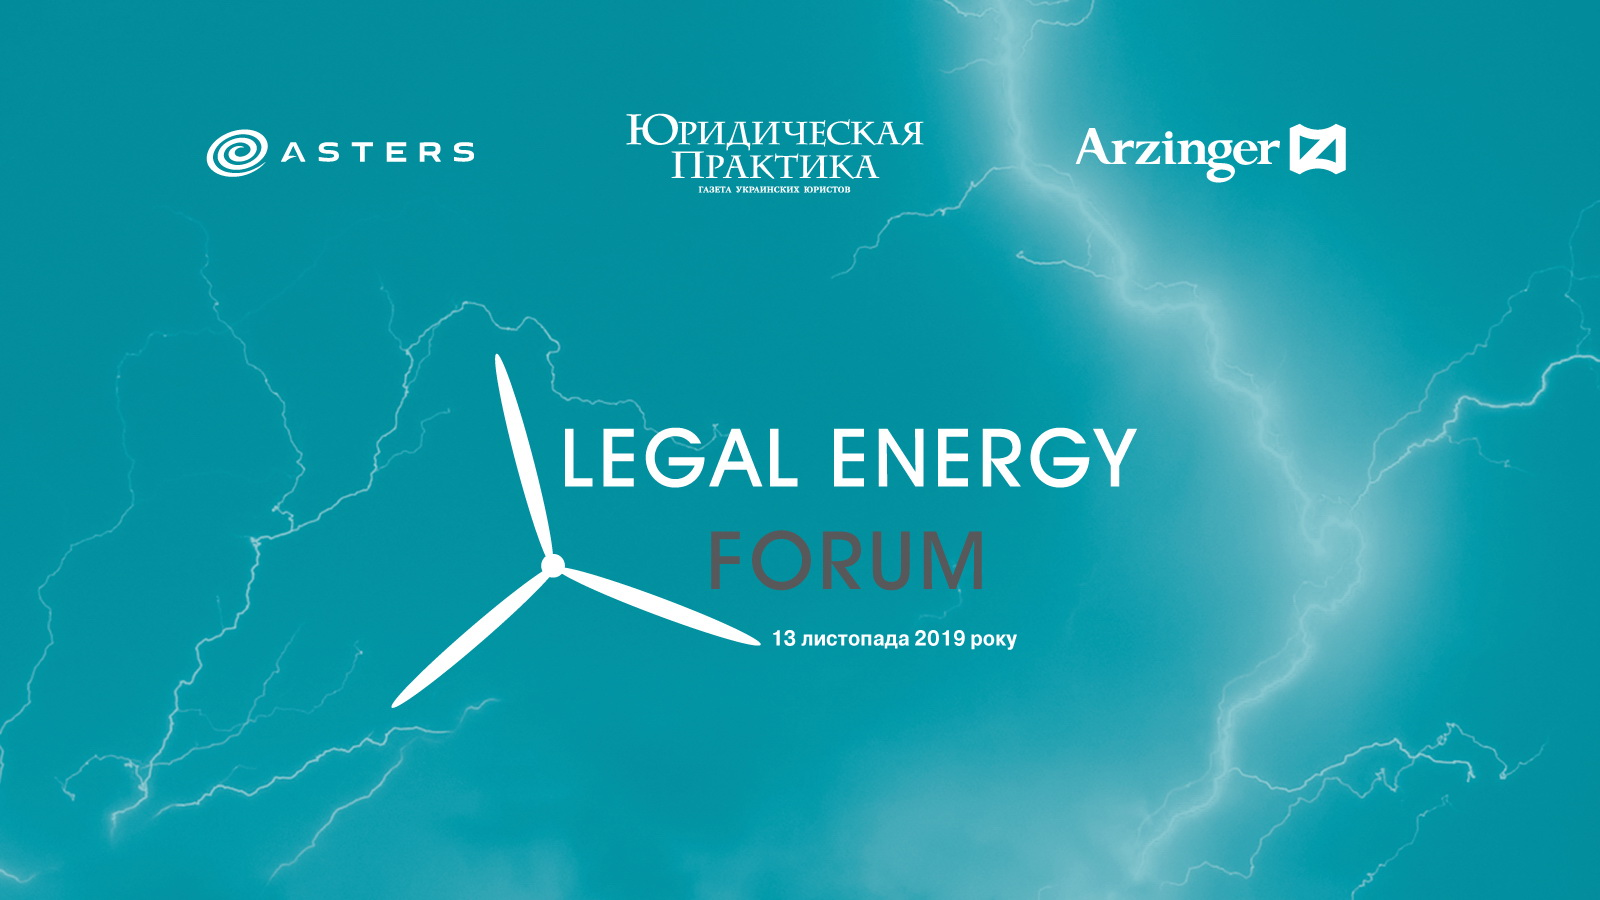 IIV Legal Energy Forum